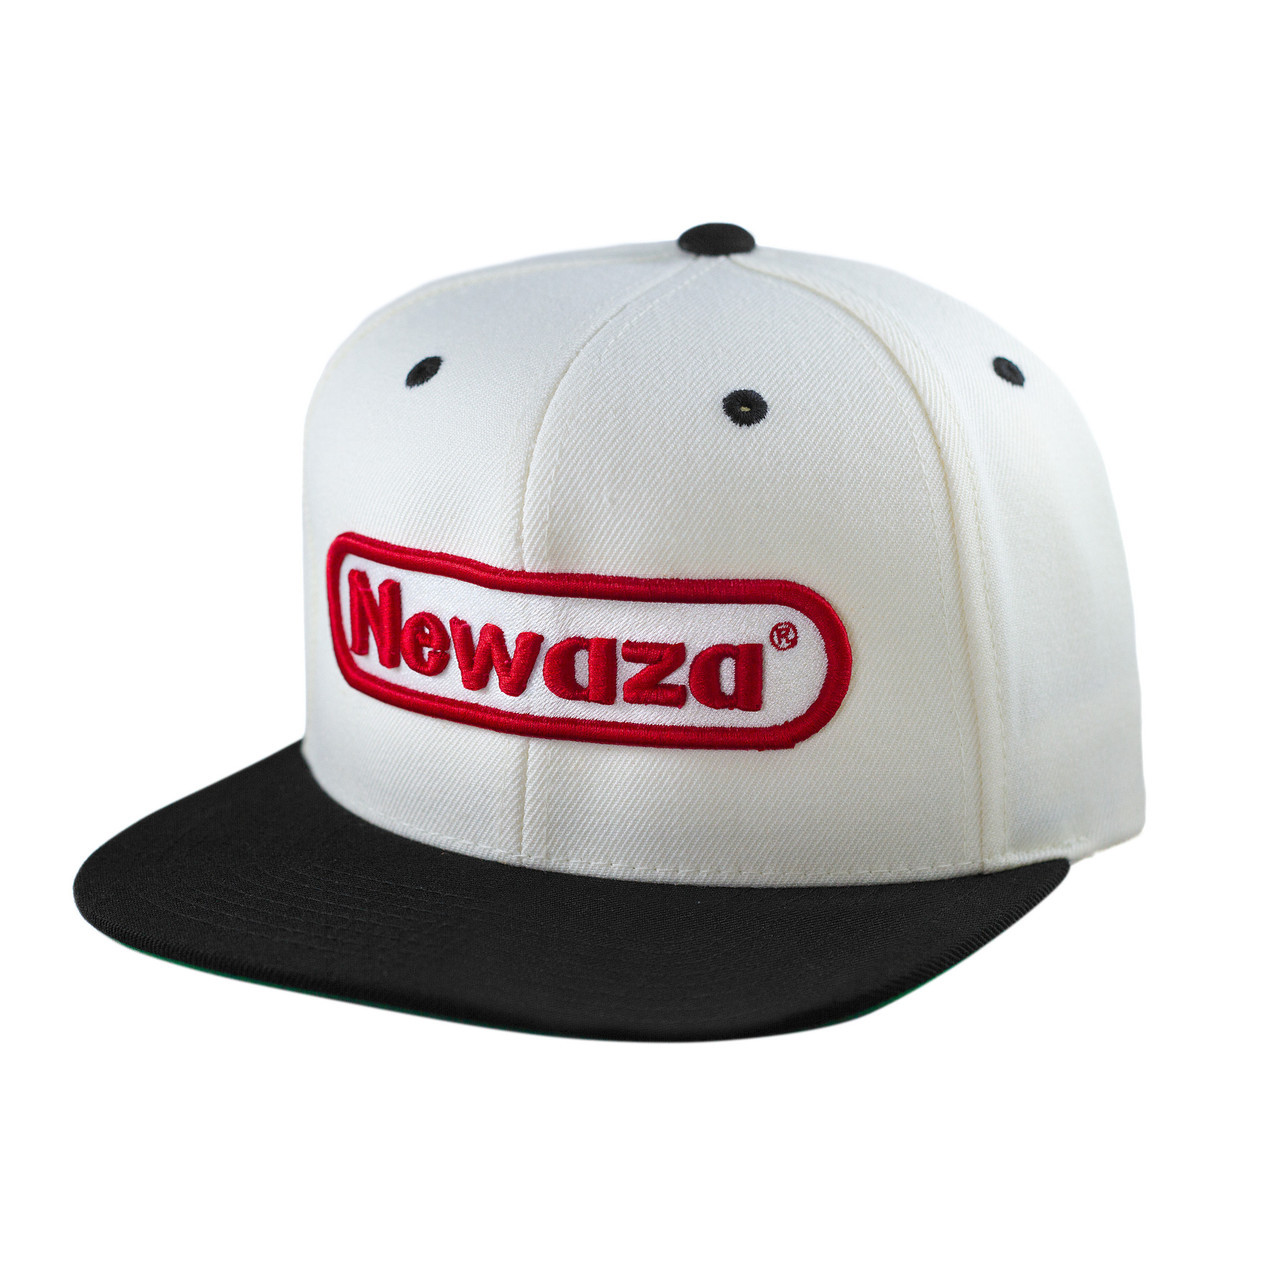 Newaza Apparel Super Newaza Hat.  Nintendo video game hat for Brazilian Jiu-Jitsu.    Free Shipping on all your needs from www.thejiujitsushop.com